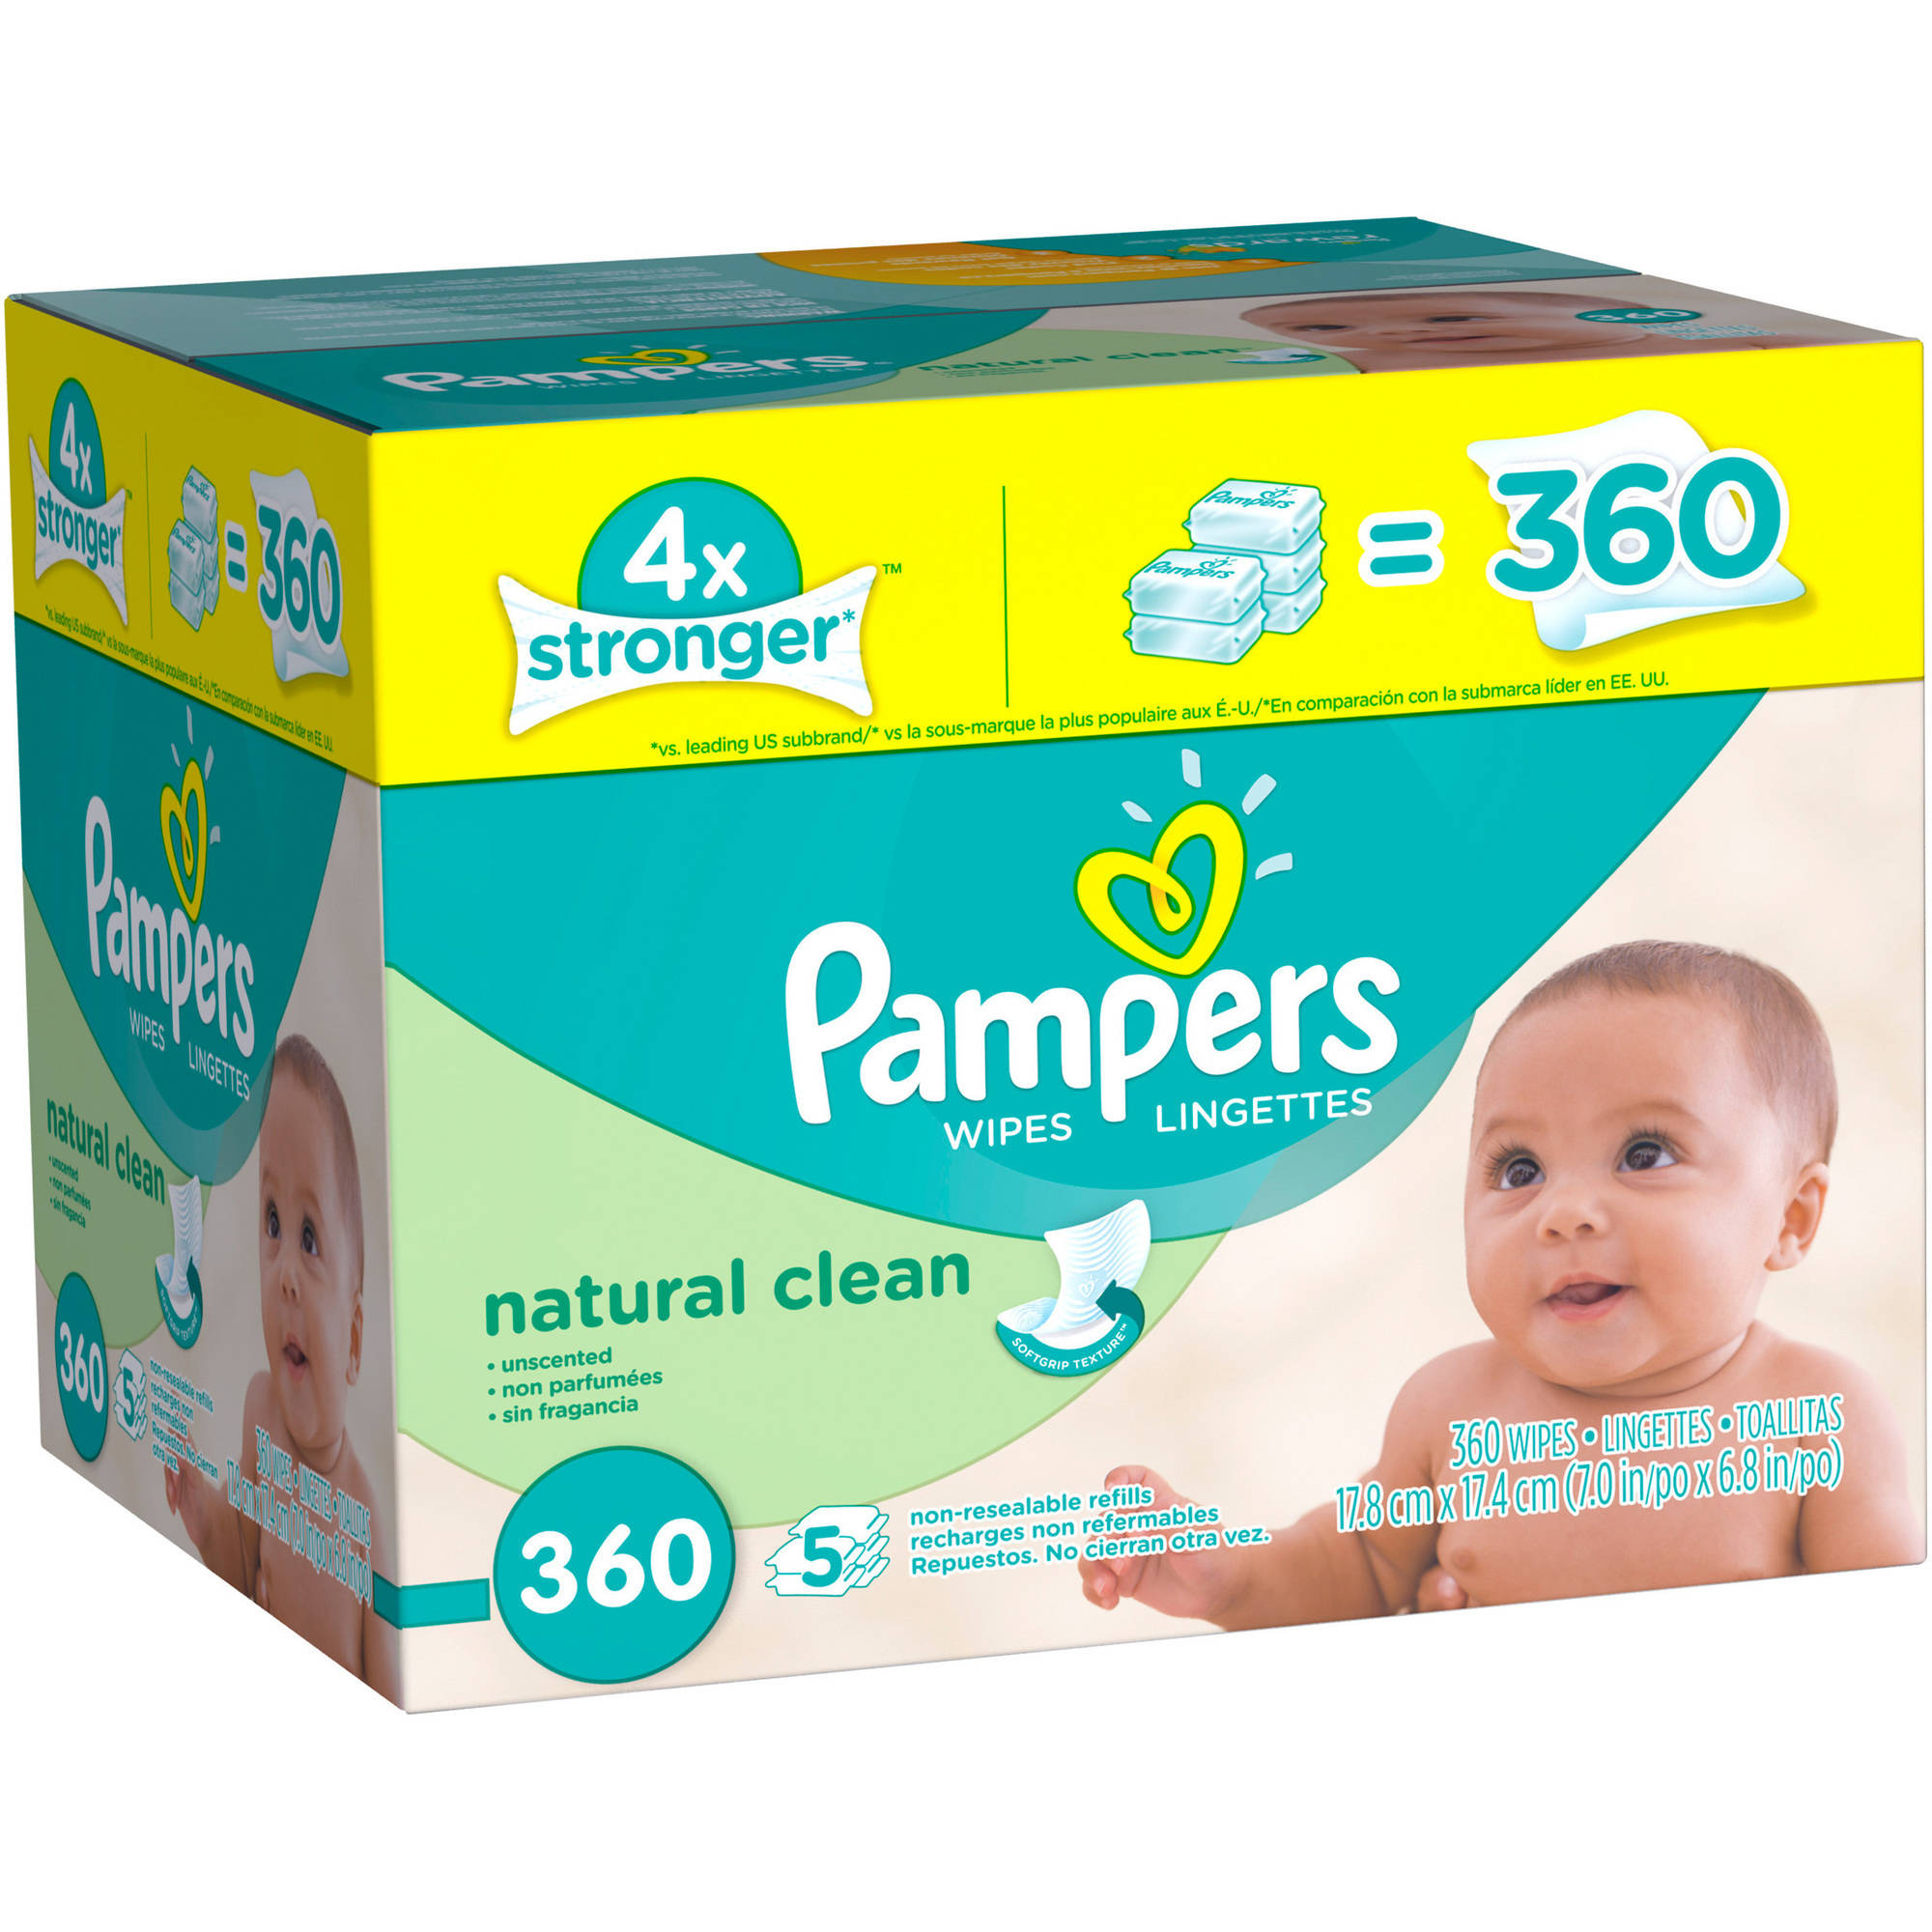 Pampers Natural Clean Baby Wipes Refills, 360 sheets